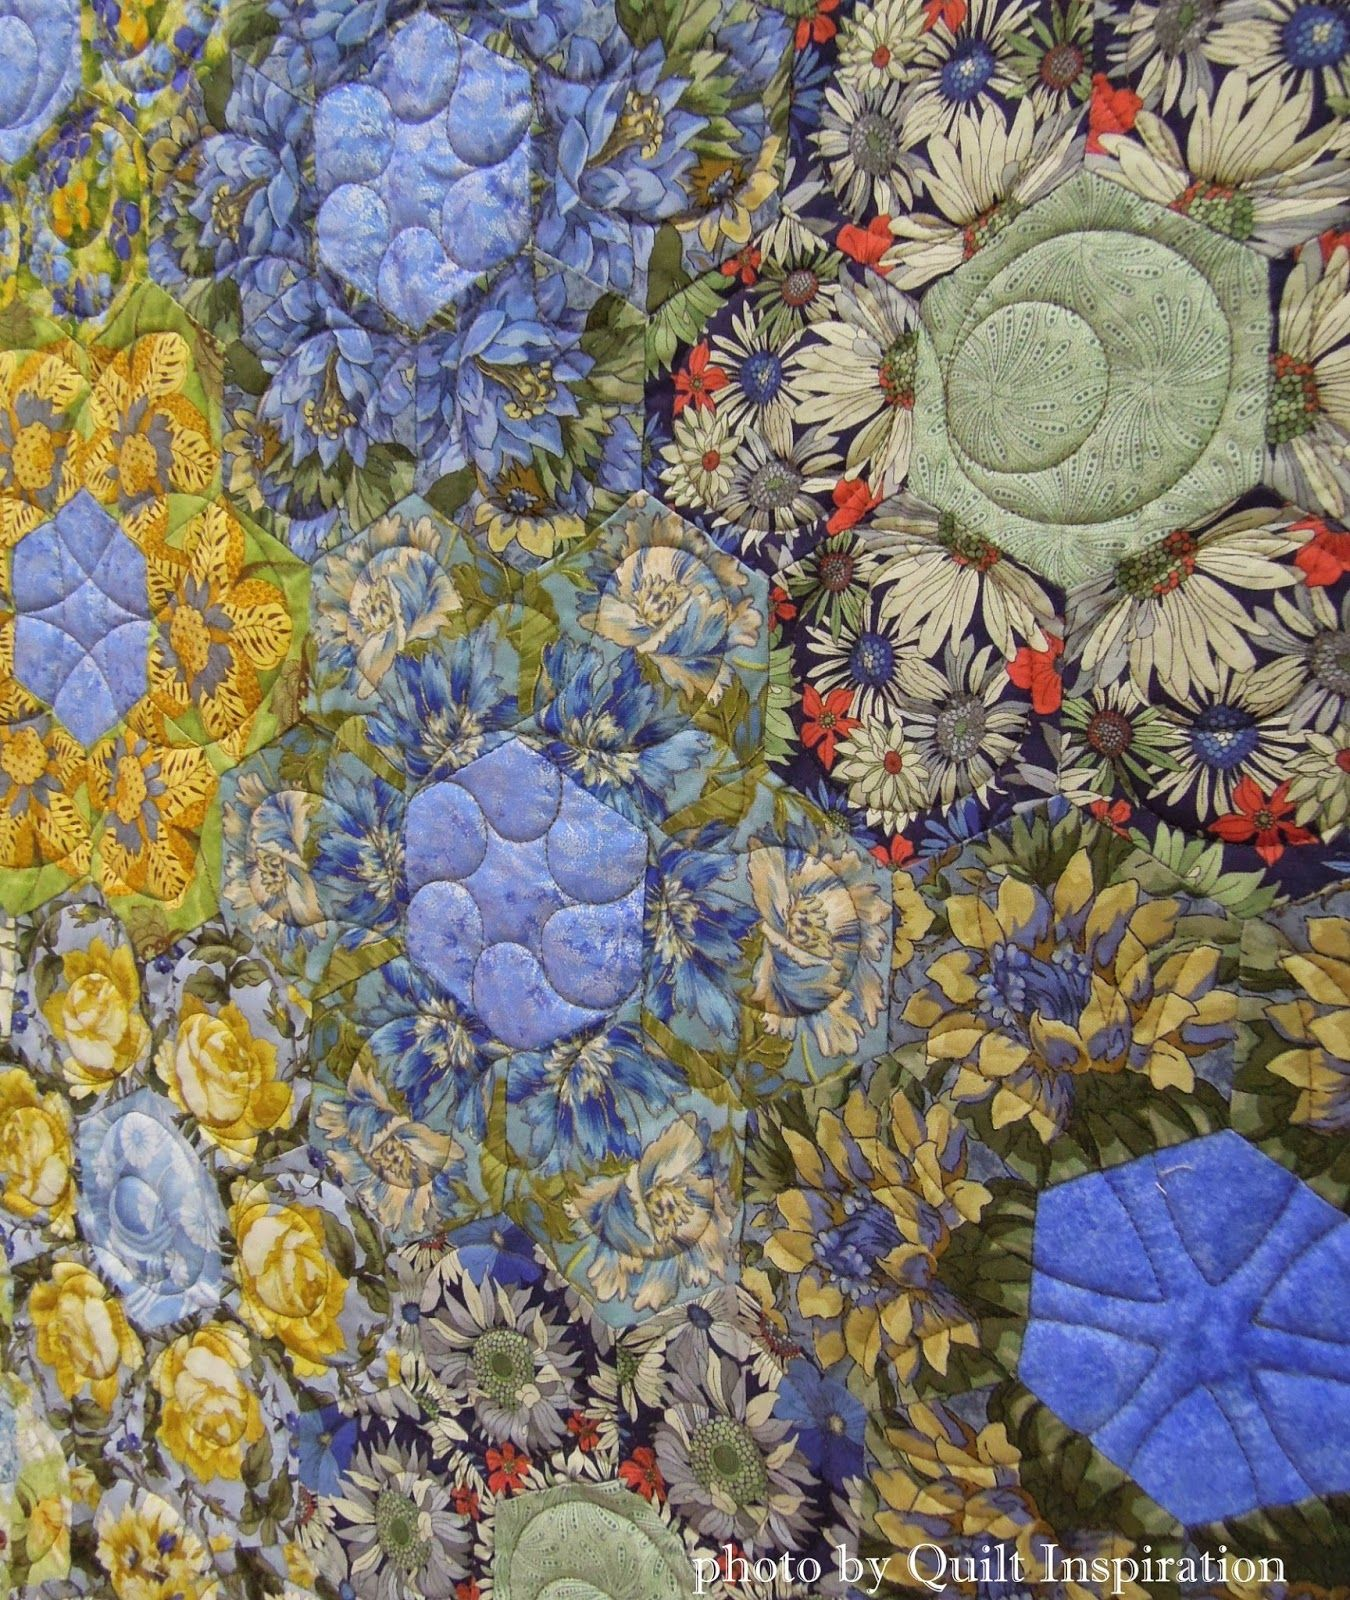 Best of the 2015 World Quilt Show in Florida (part 1)